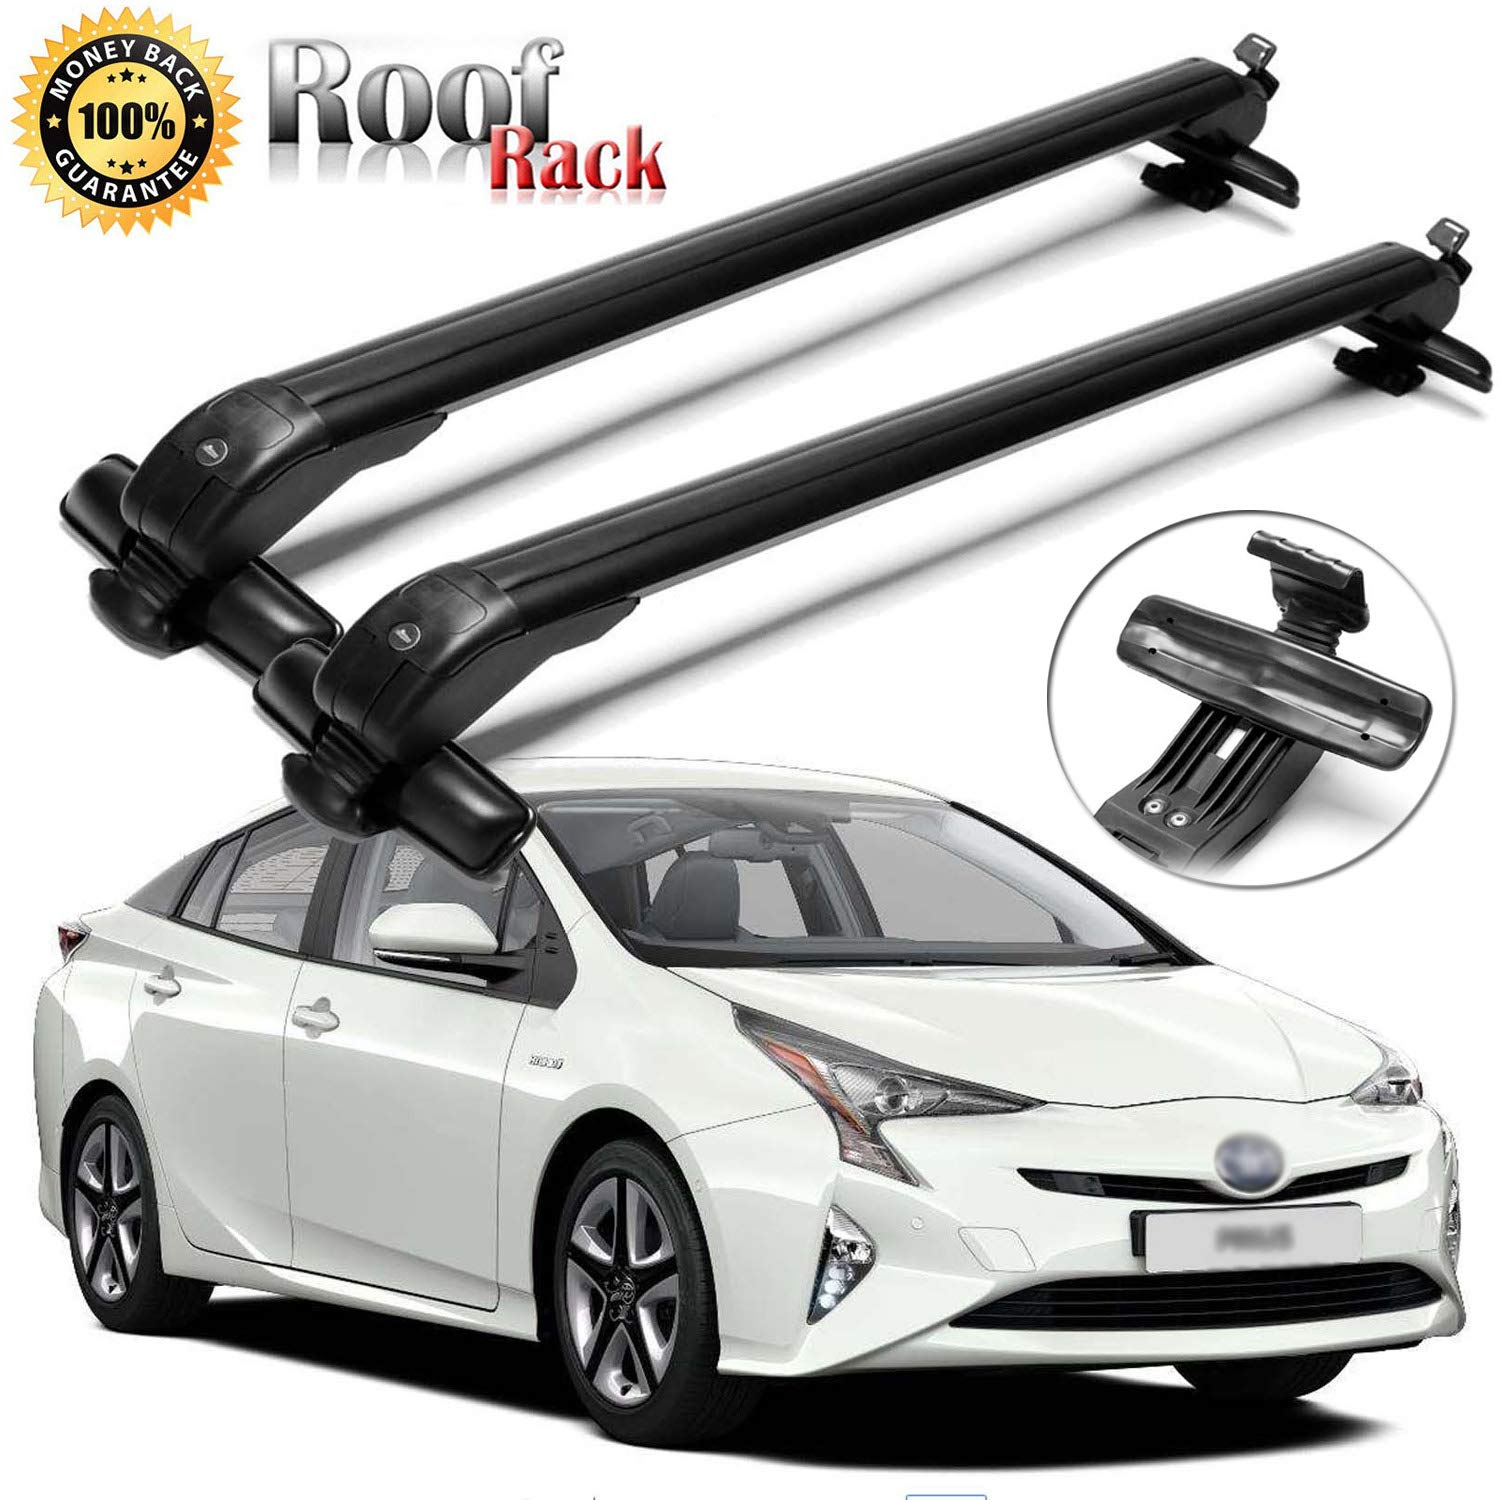 2Pcs SIKY Roof Rack 43 Adjustable Aluminum Roof Rack Cross Bars Top Luggage Carrier for Toyota Prius 2002-2016